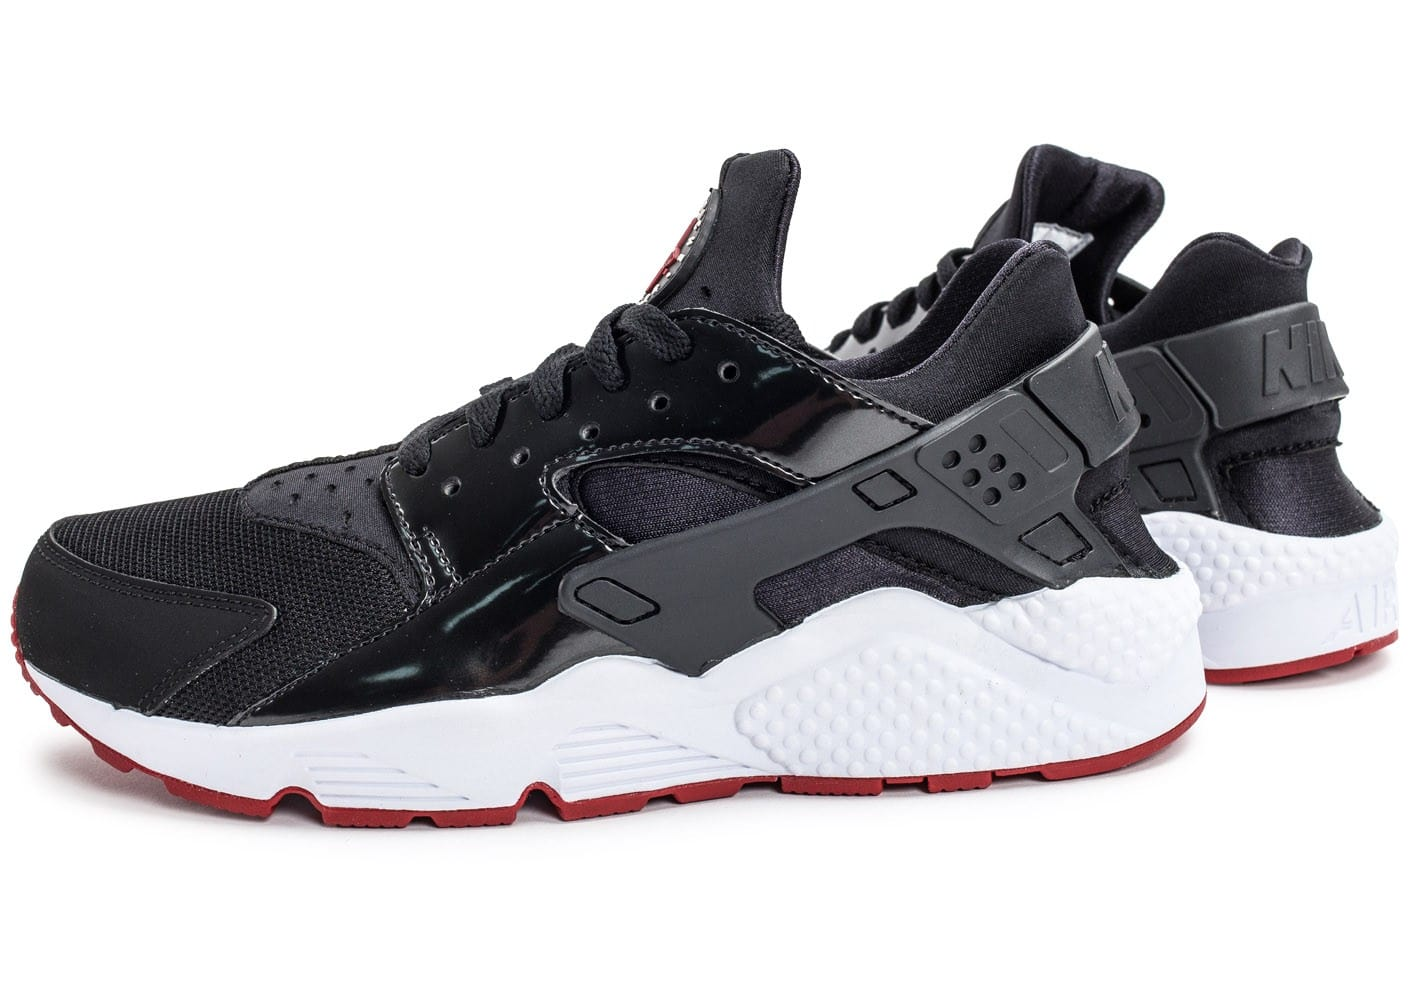 Pack Chaussures Patent Huarache Air Leather Homme Run Baskets Nike wN8vnOm0